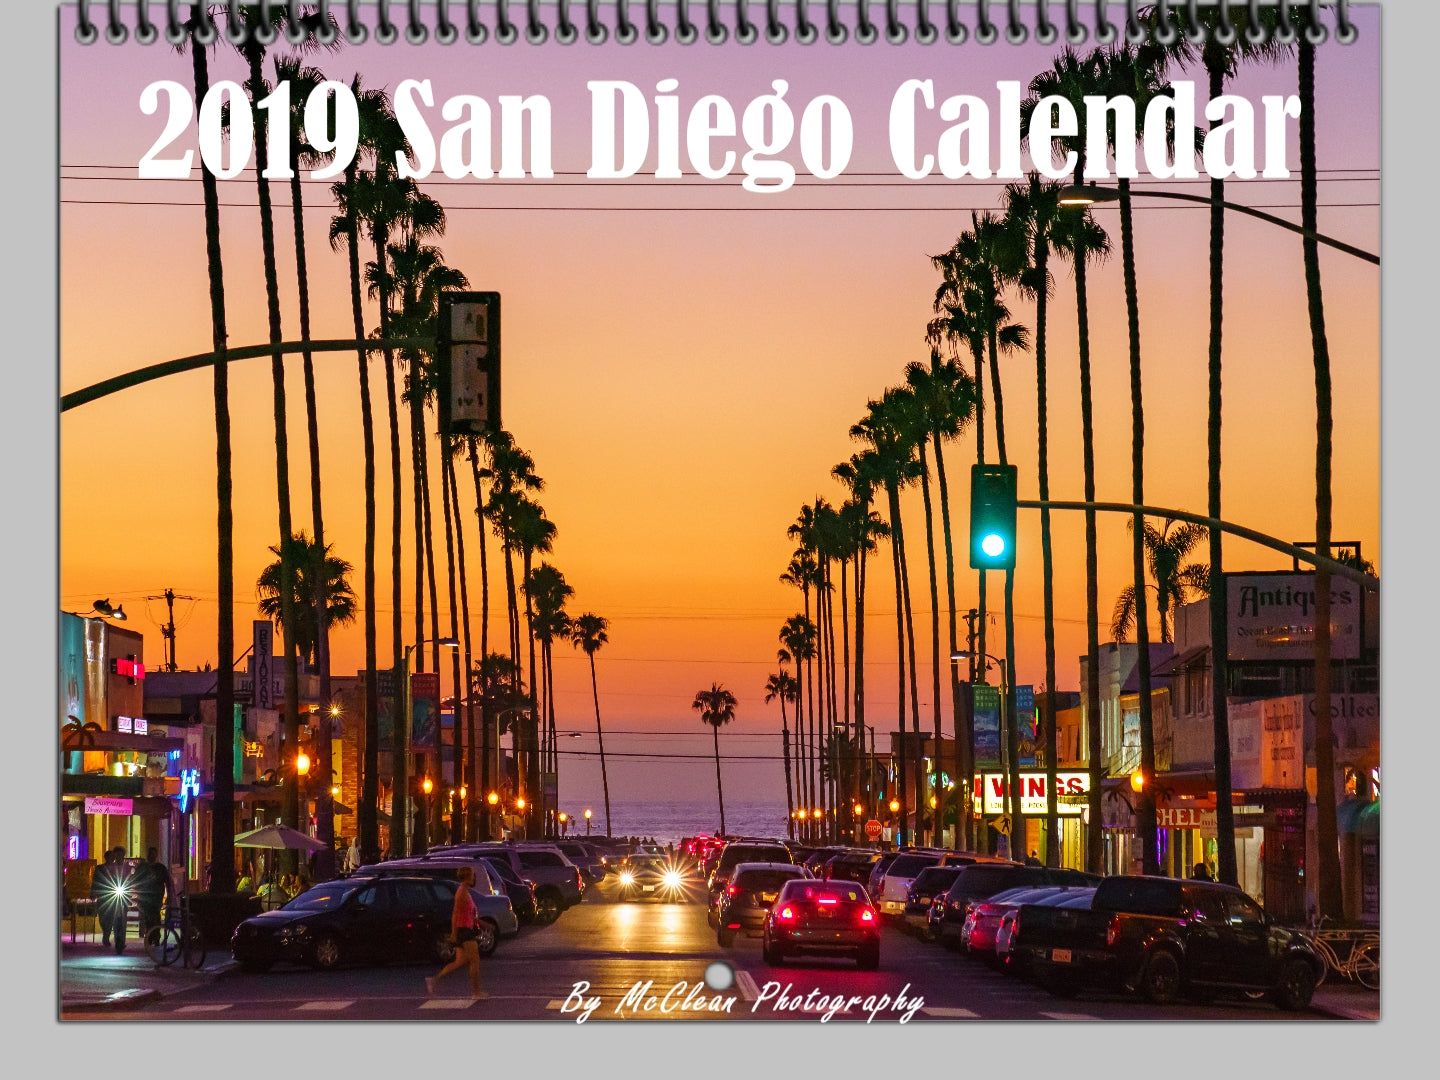 2019 San Diego Calendar Available Now!